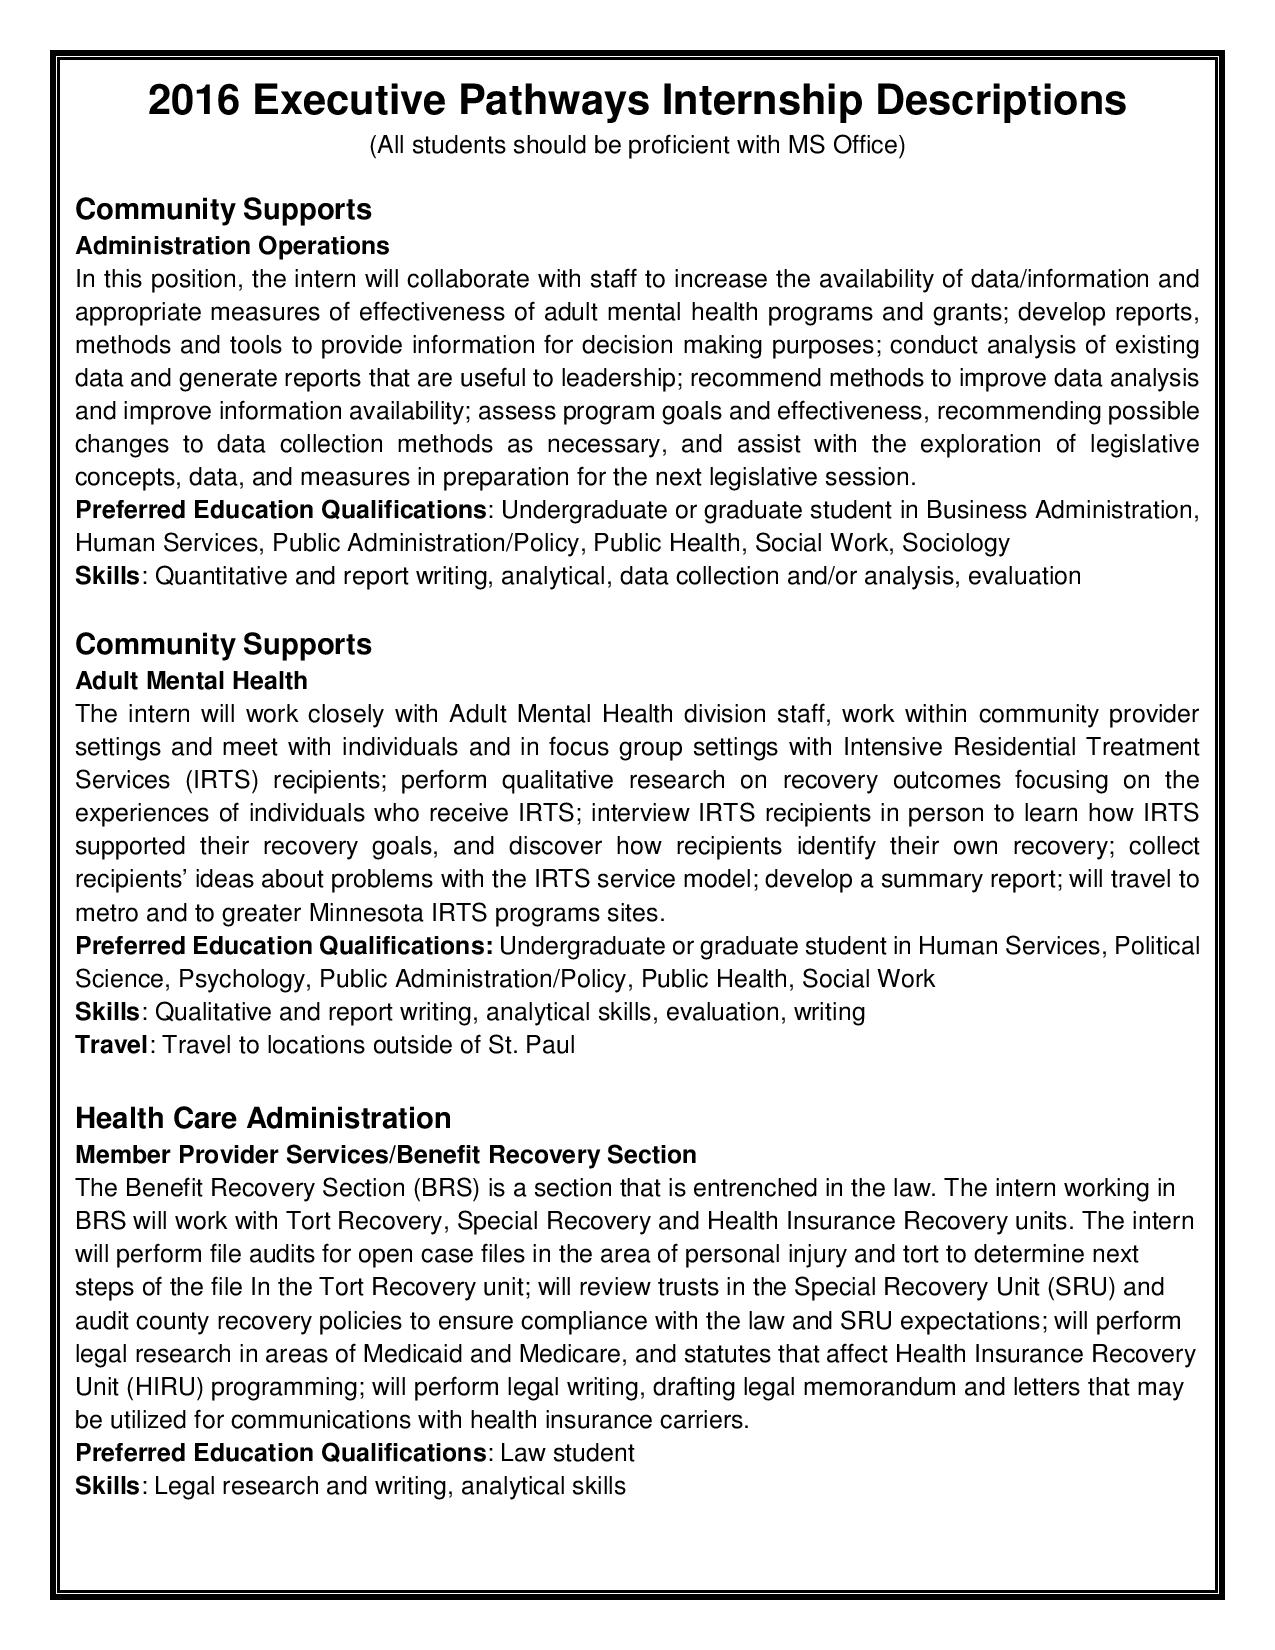 Minnesota-DHS-Internship-Program-page-002.jpg